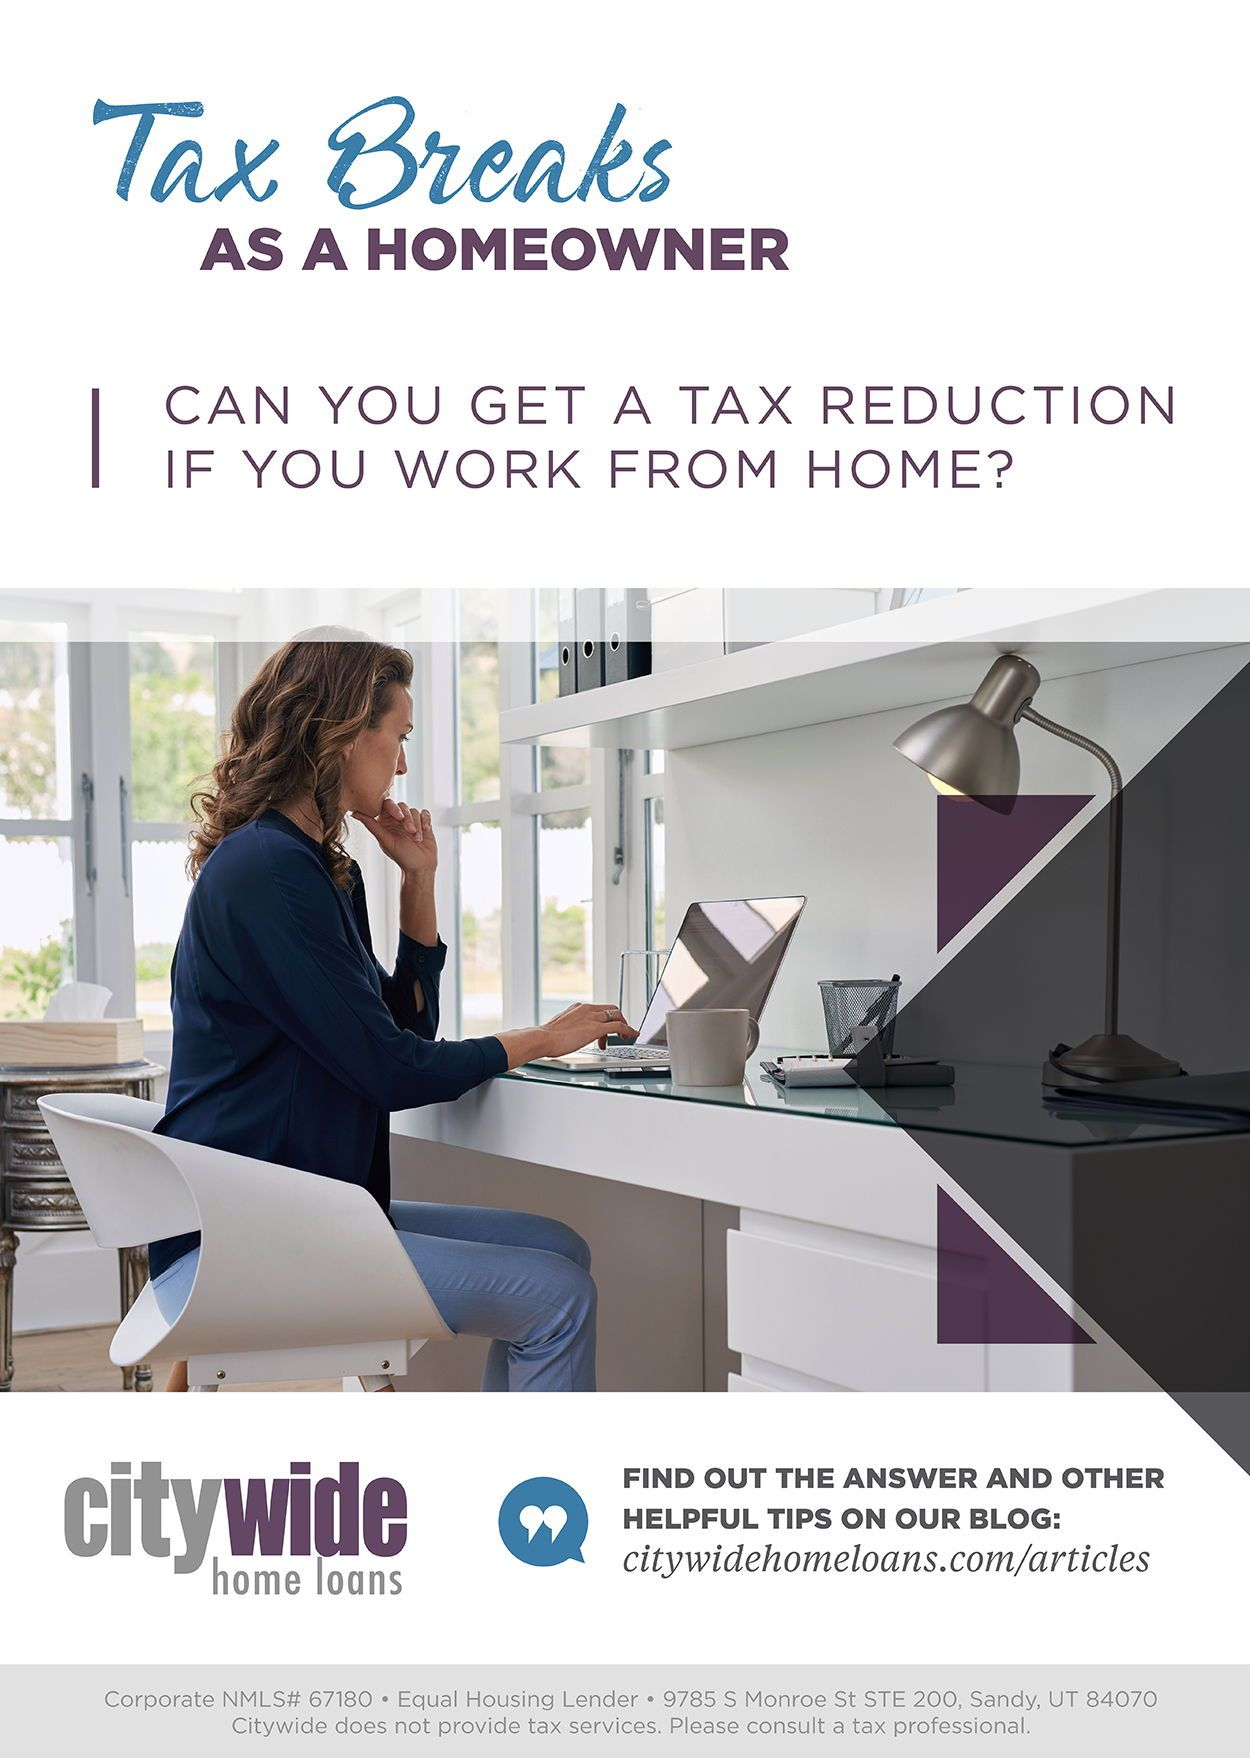 Homeowner Tax Breaks Can You Get A Tax Reduction If You Work From